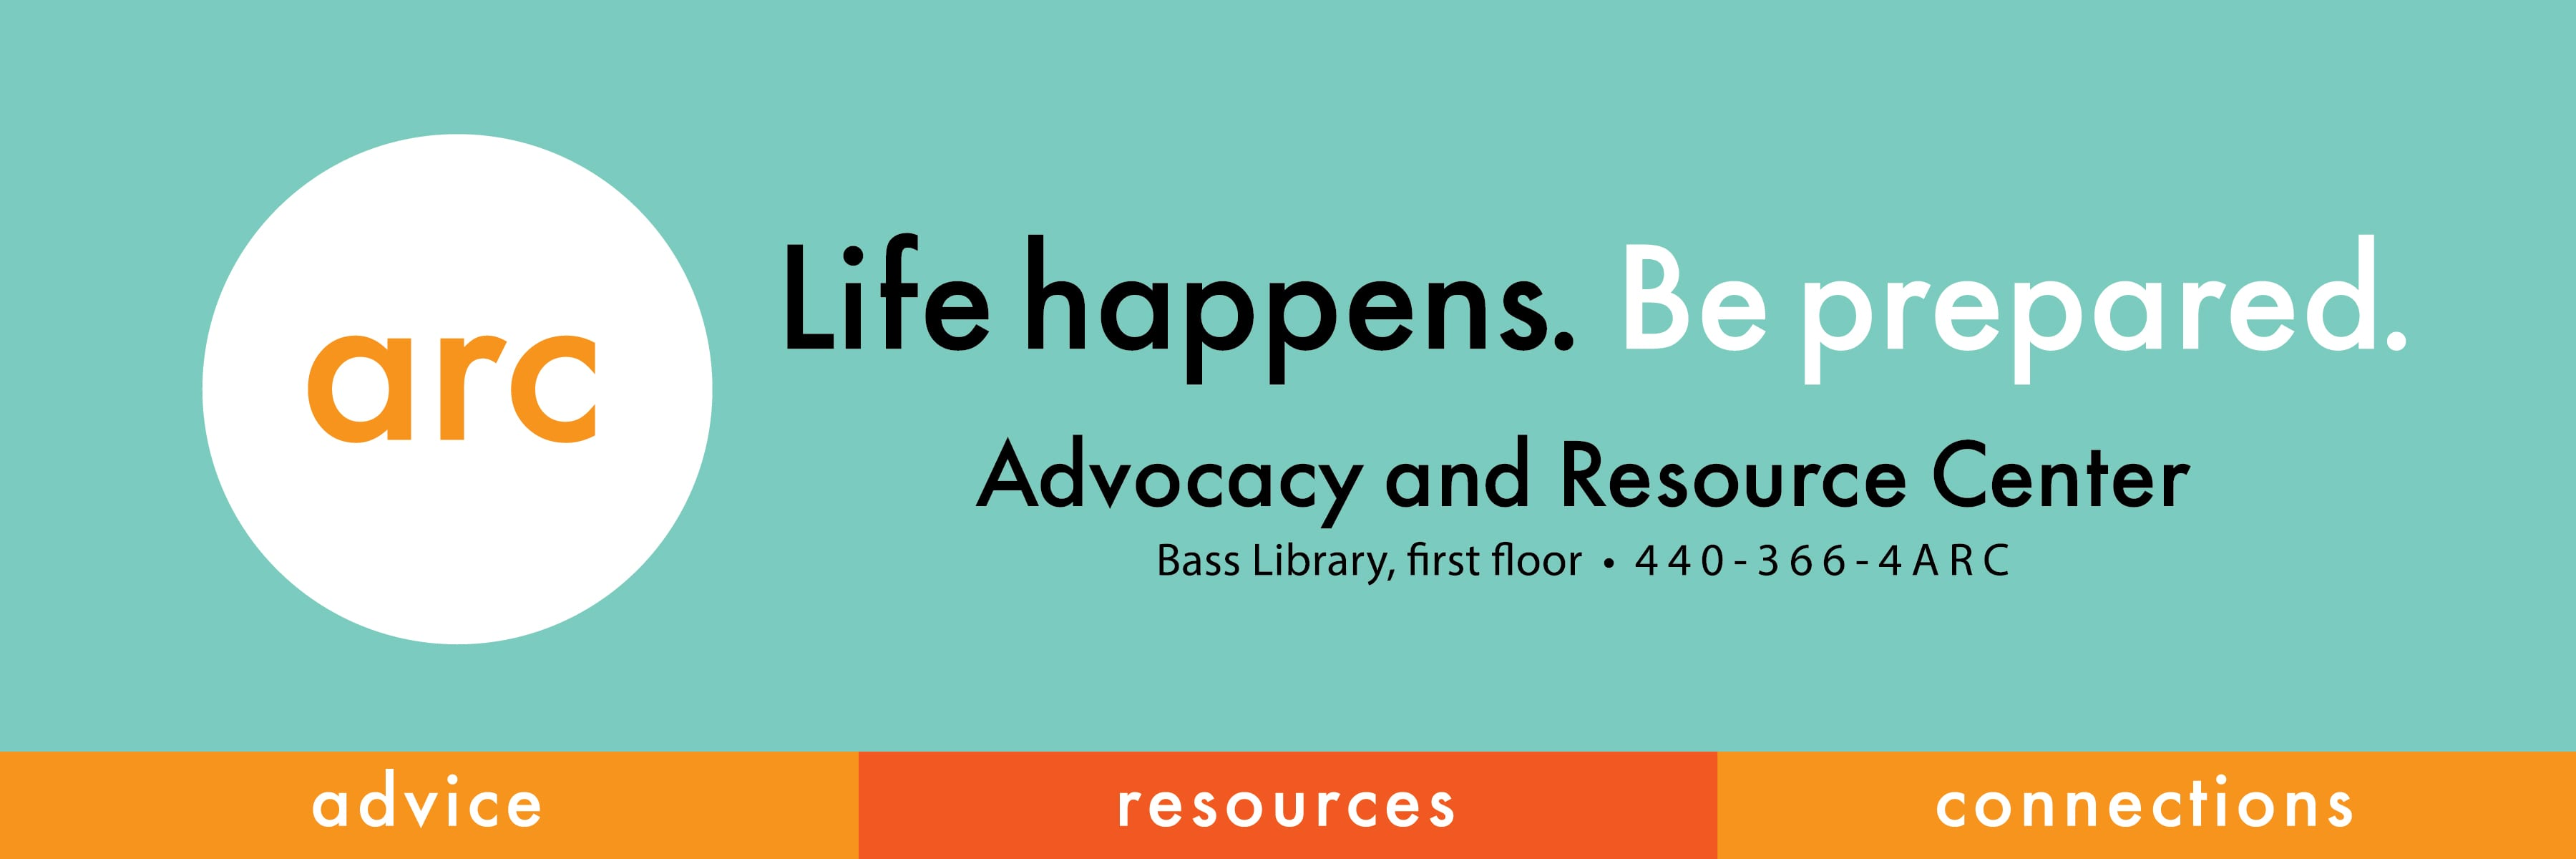 ARC - Life Happens. Be Prepared. Advocacy and Resource Center. Advice. Resources. Connections